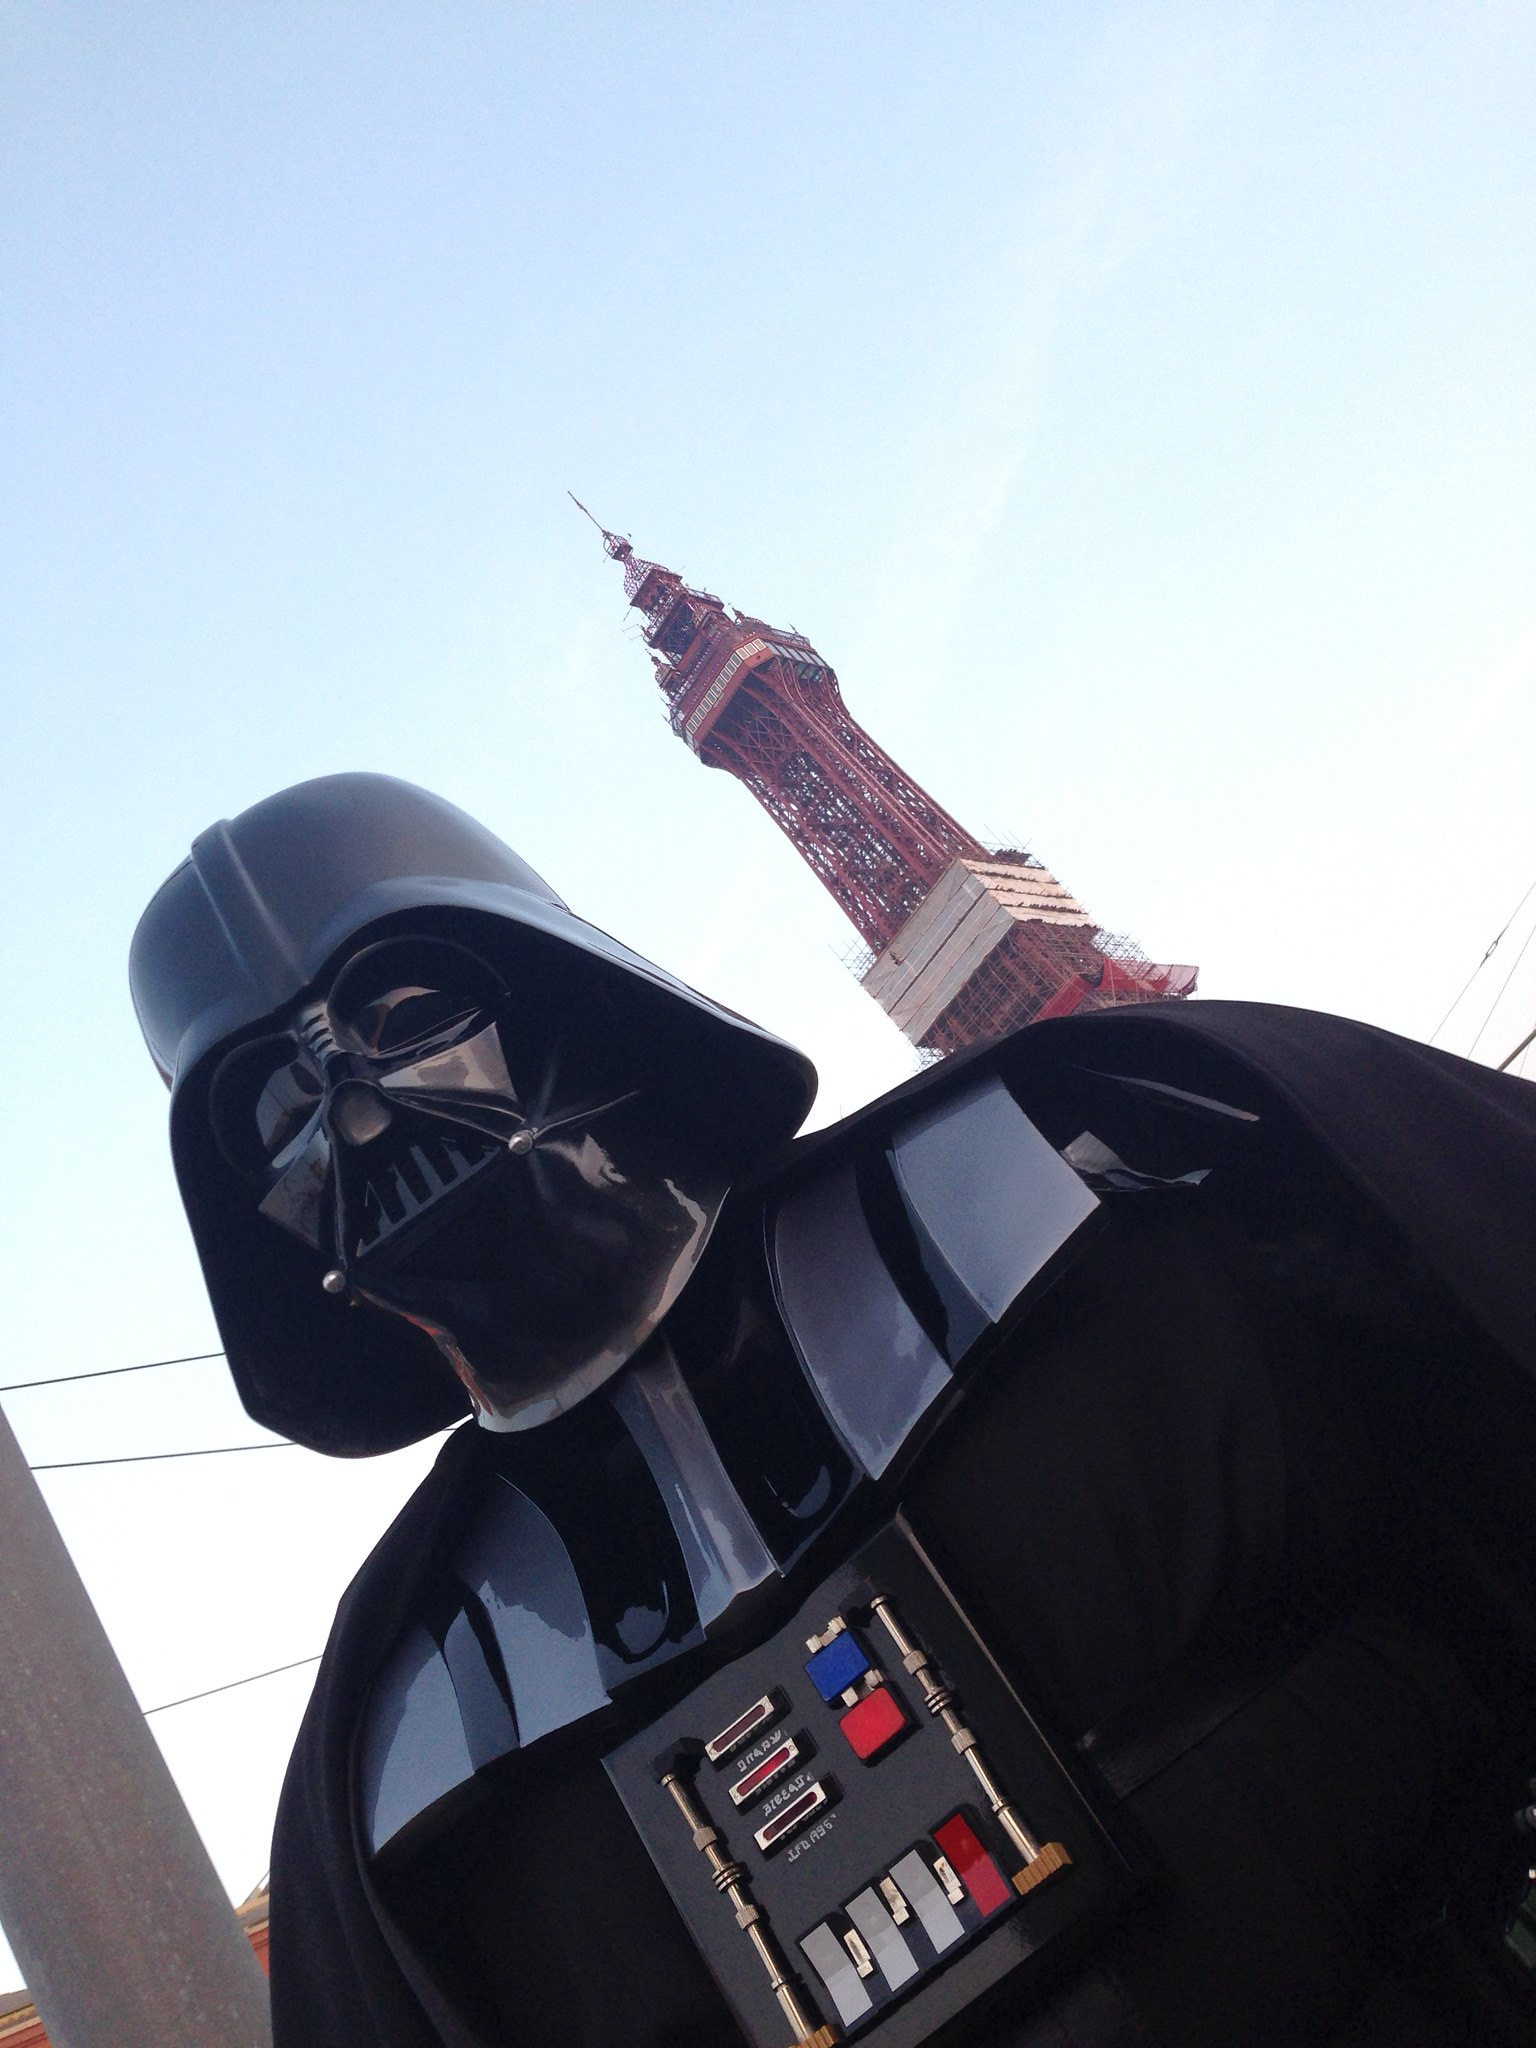 Blackpool Comic-Con Launch Party - Star Wars Darth Vader by Blackpool Tower